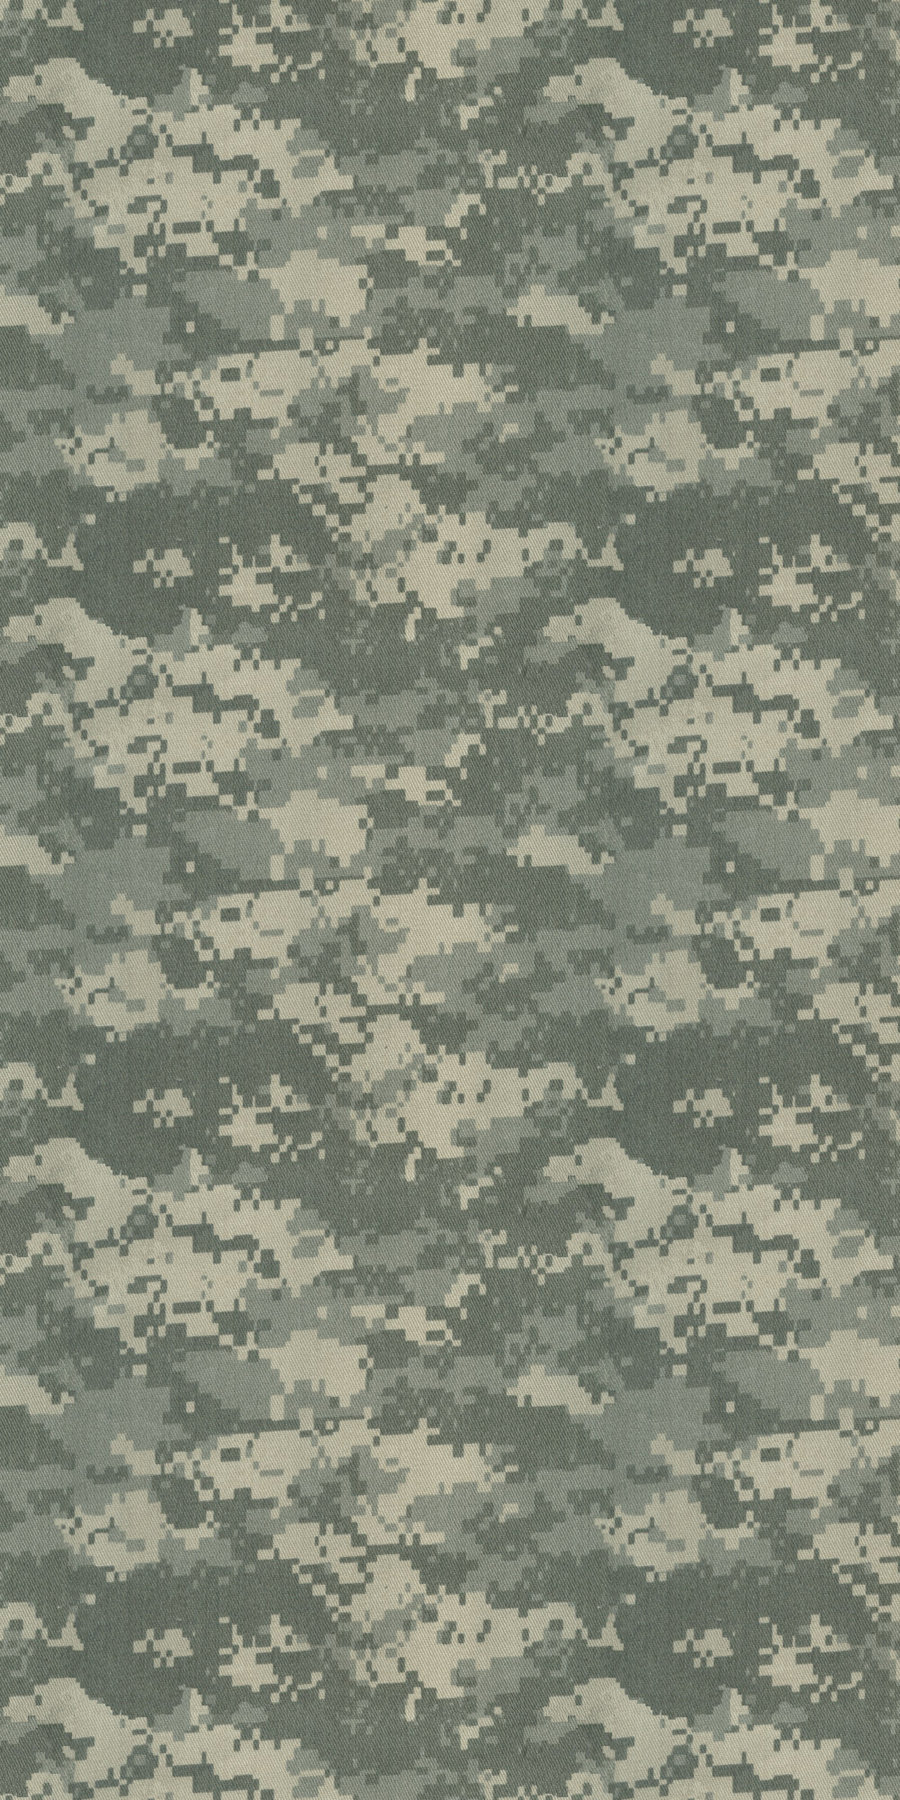 Digital Camo Wallpaper Custom bg digital camo by 900x1800